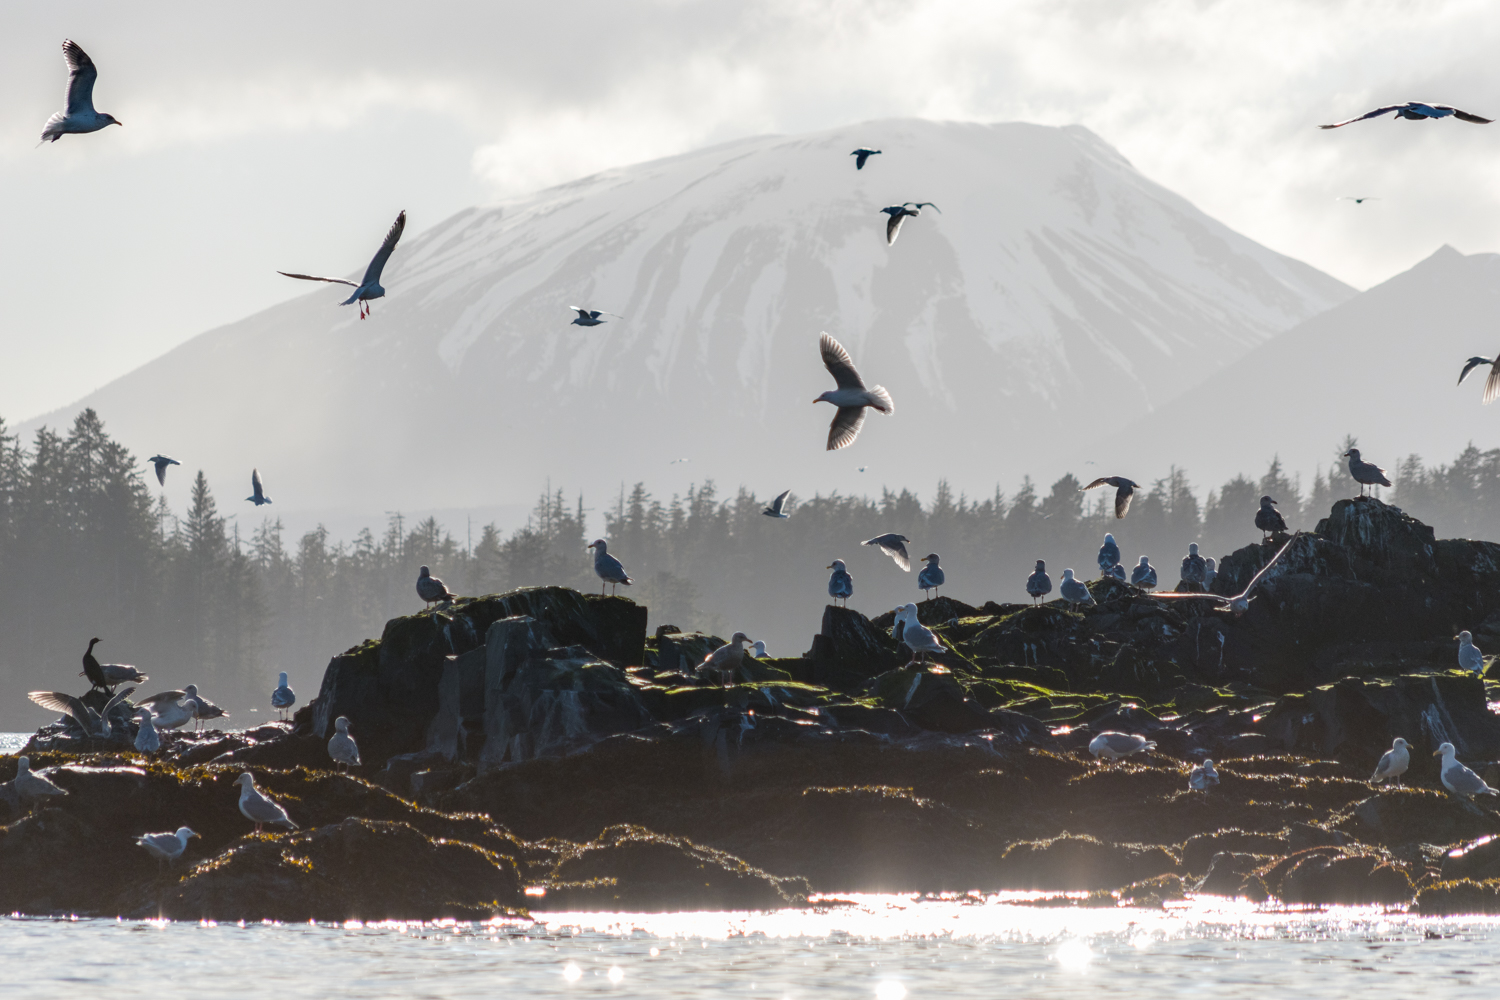 During herring season, life returns to our shores. Whales, seabirds, sea lions all flock to the sound in high numbers. Here, seagulls pick eggs off the rocks of Gavanski Island. Mount Edgecumbe, Sitka's neighboring volcano looms in the background on Kruzof Island.